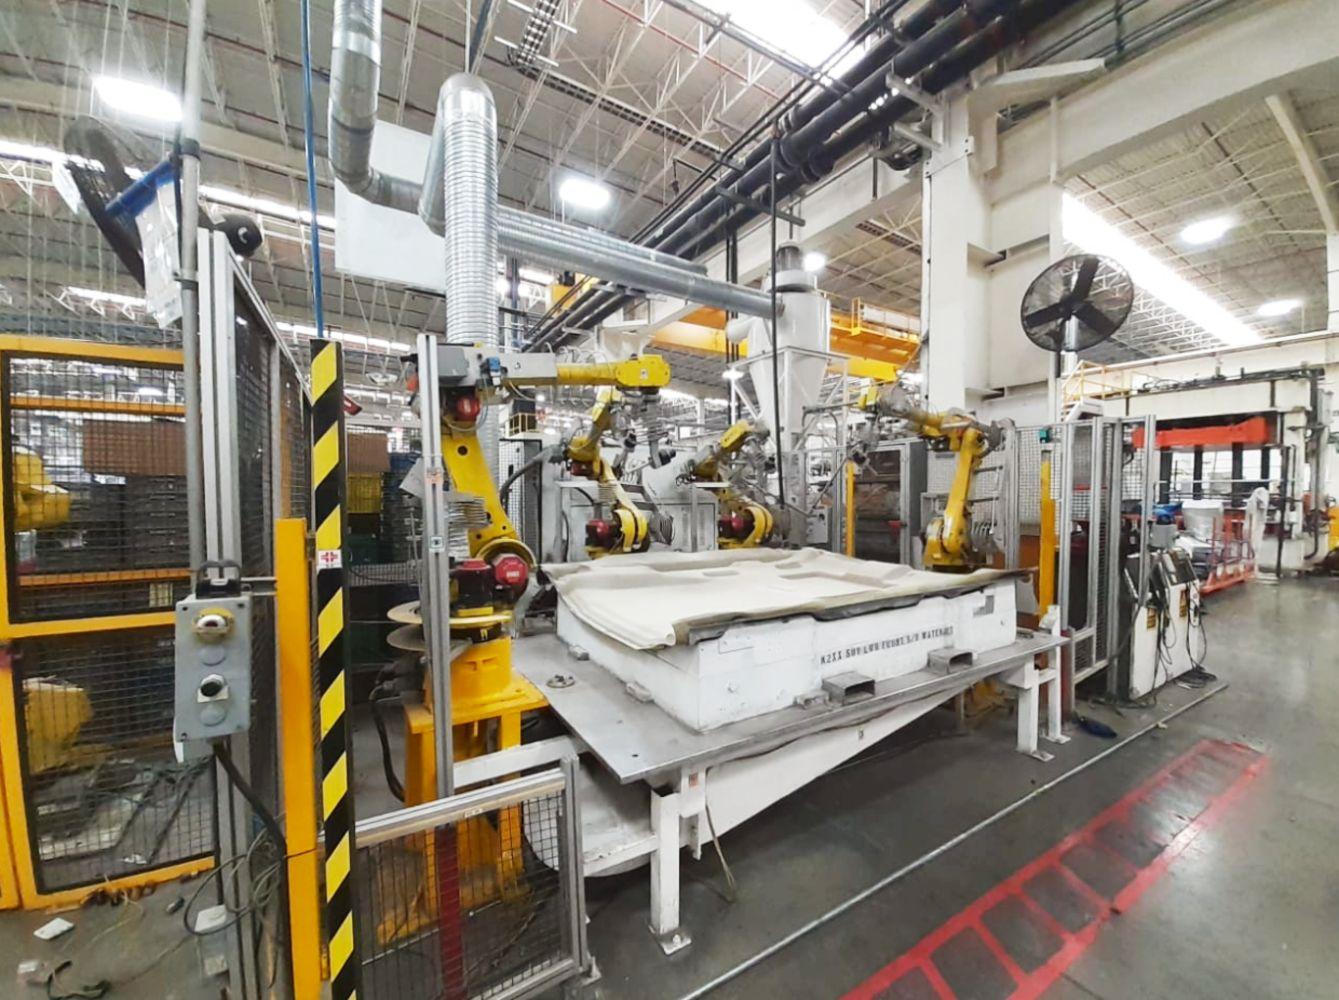 Water jet cutting machines, Fanuc articulated robots, Sewing machines and spare parts